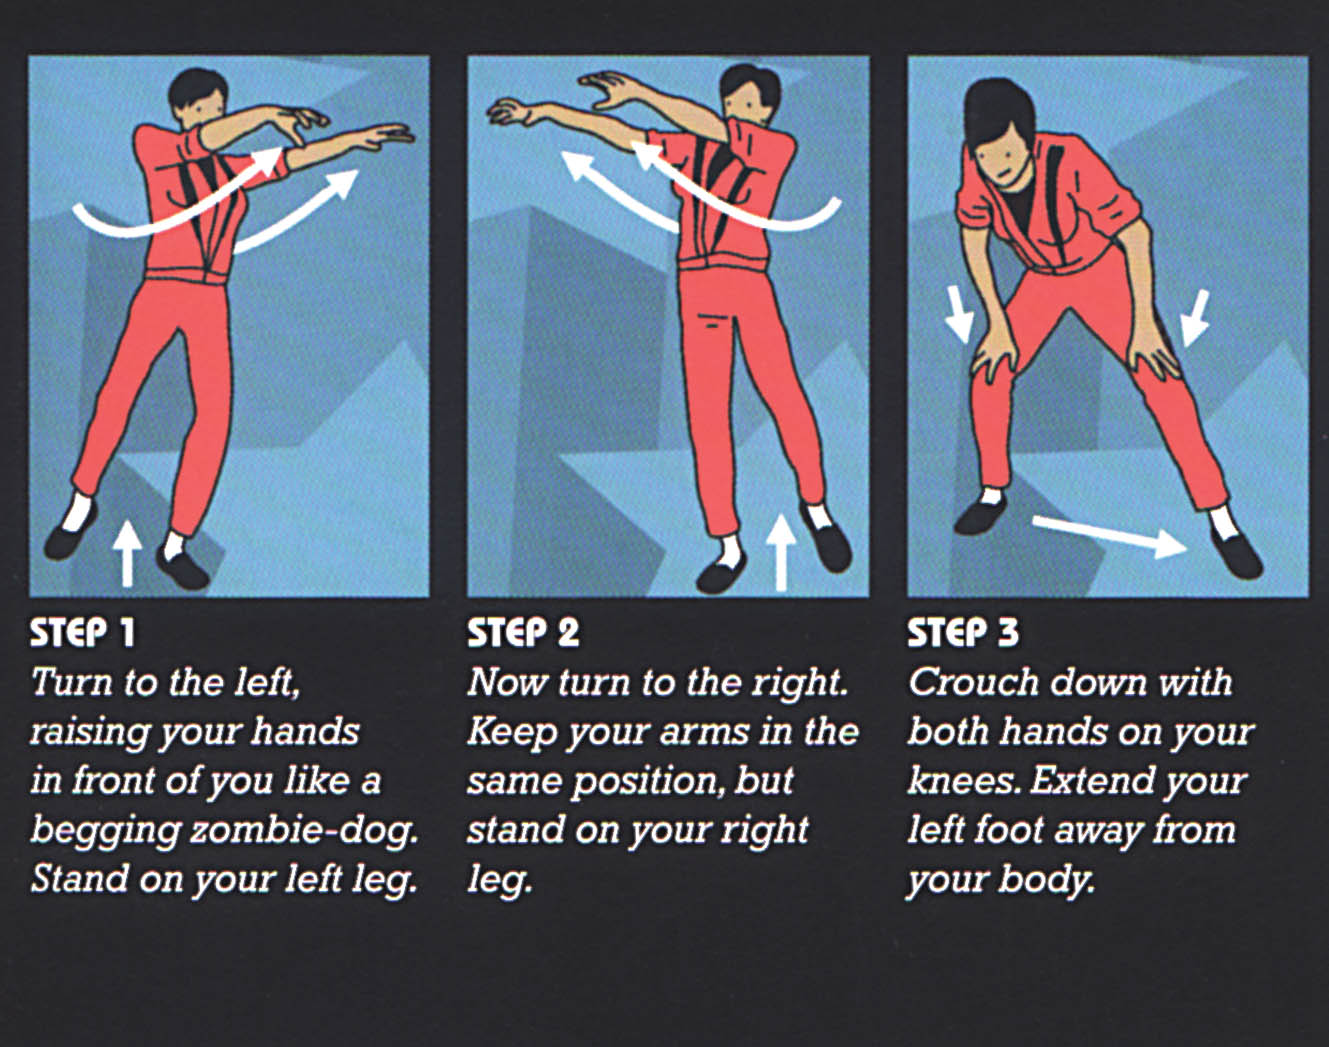 Examples of Michael Jackson's Thriller moves